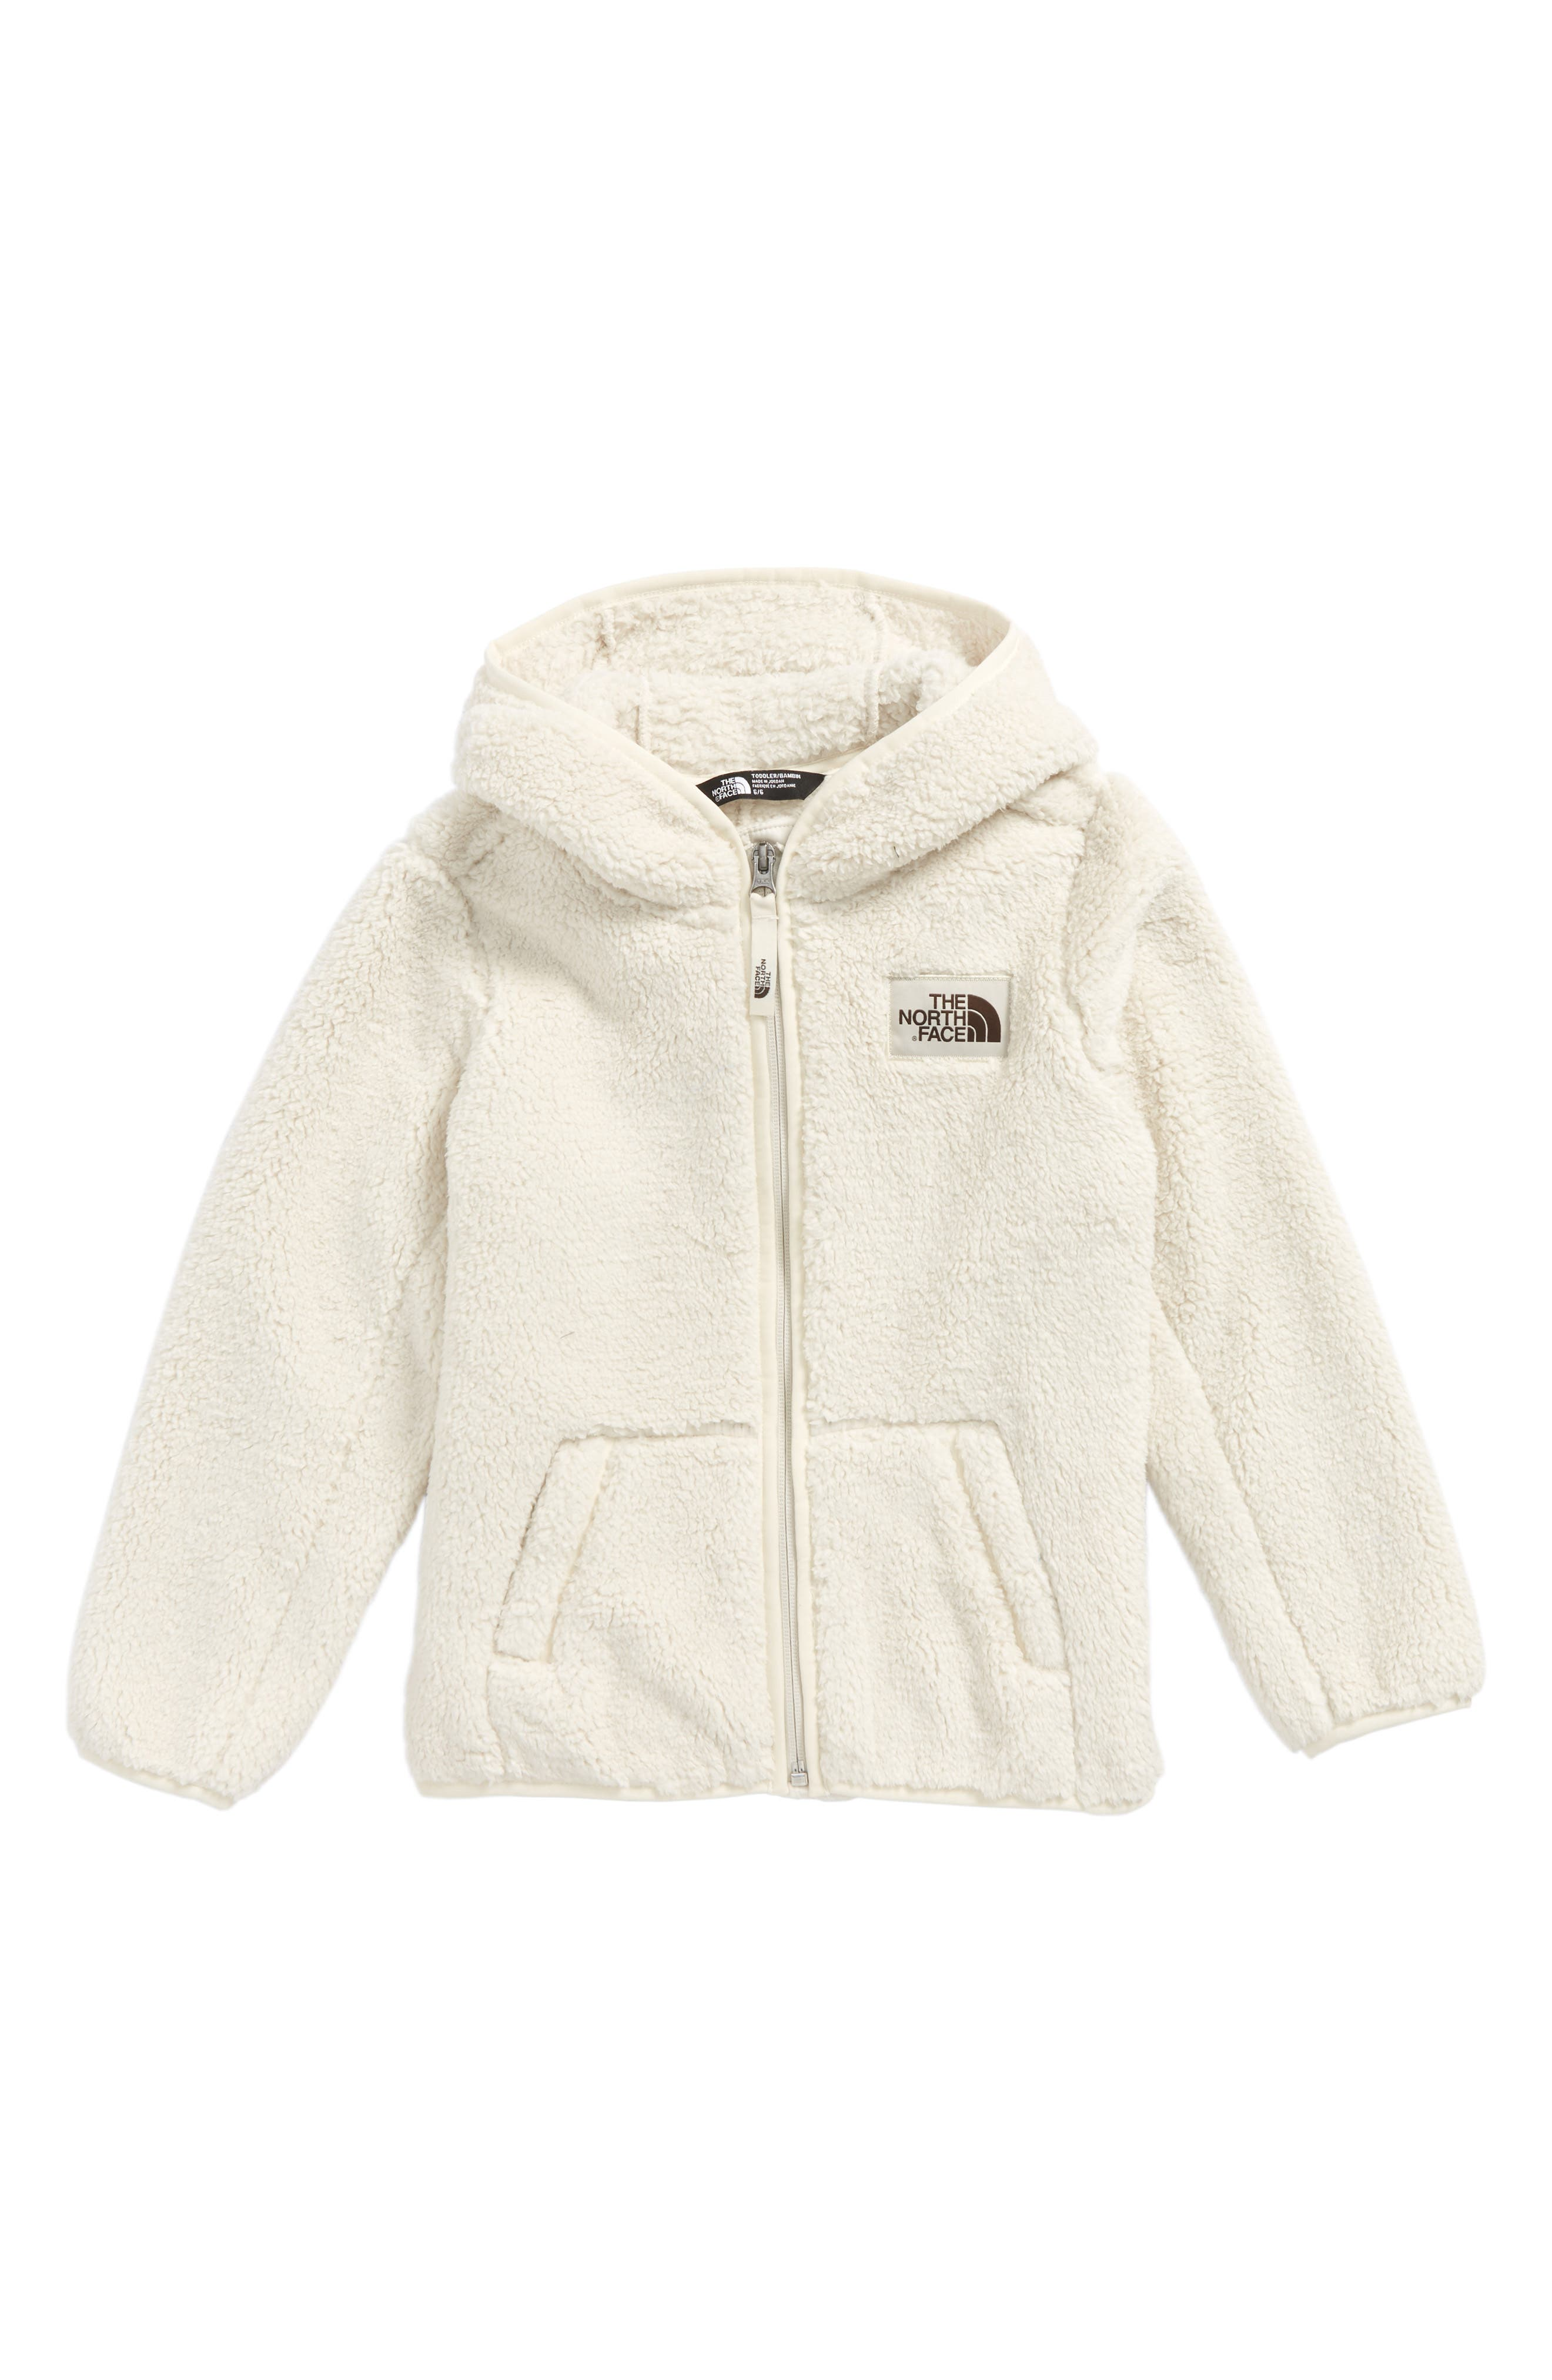 The North Face Campshire Hooded Fleece Jacket (Toddler Girls & Little Girls)